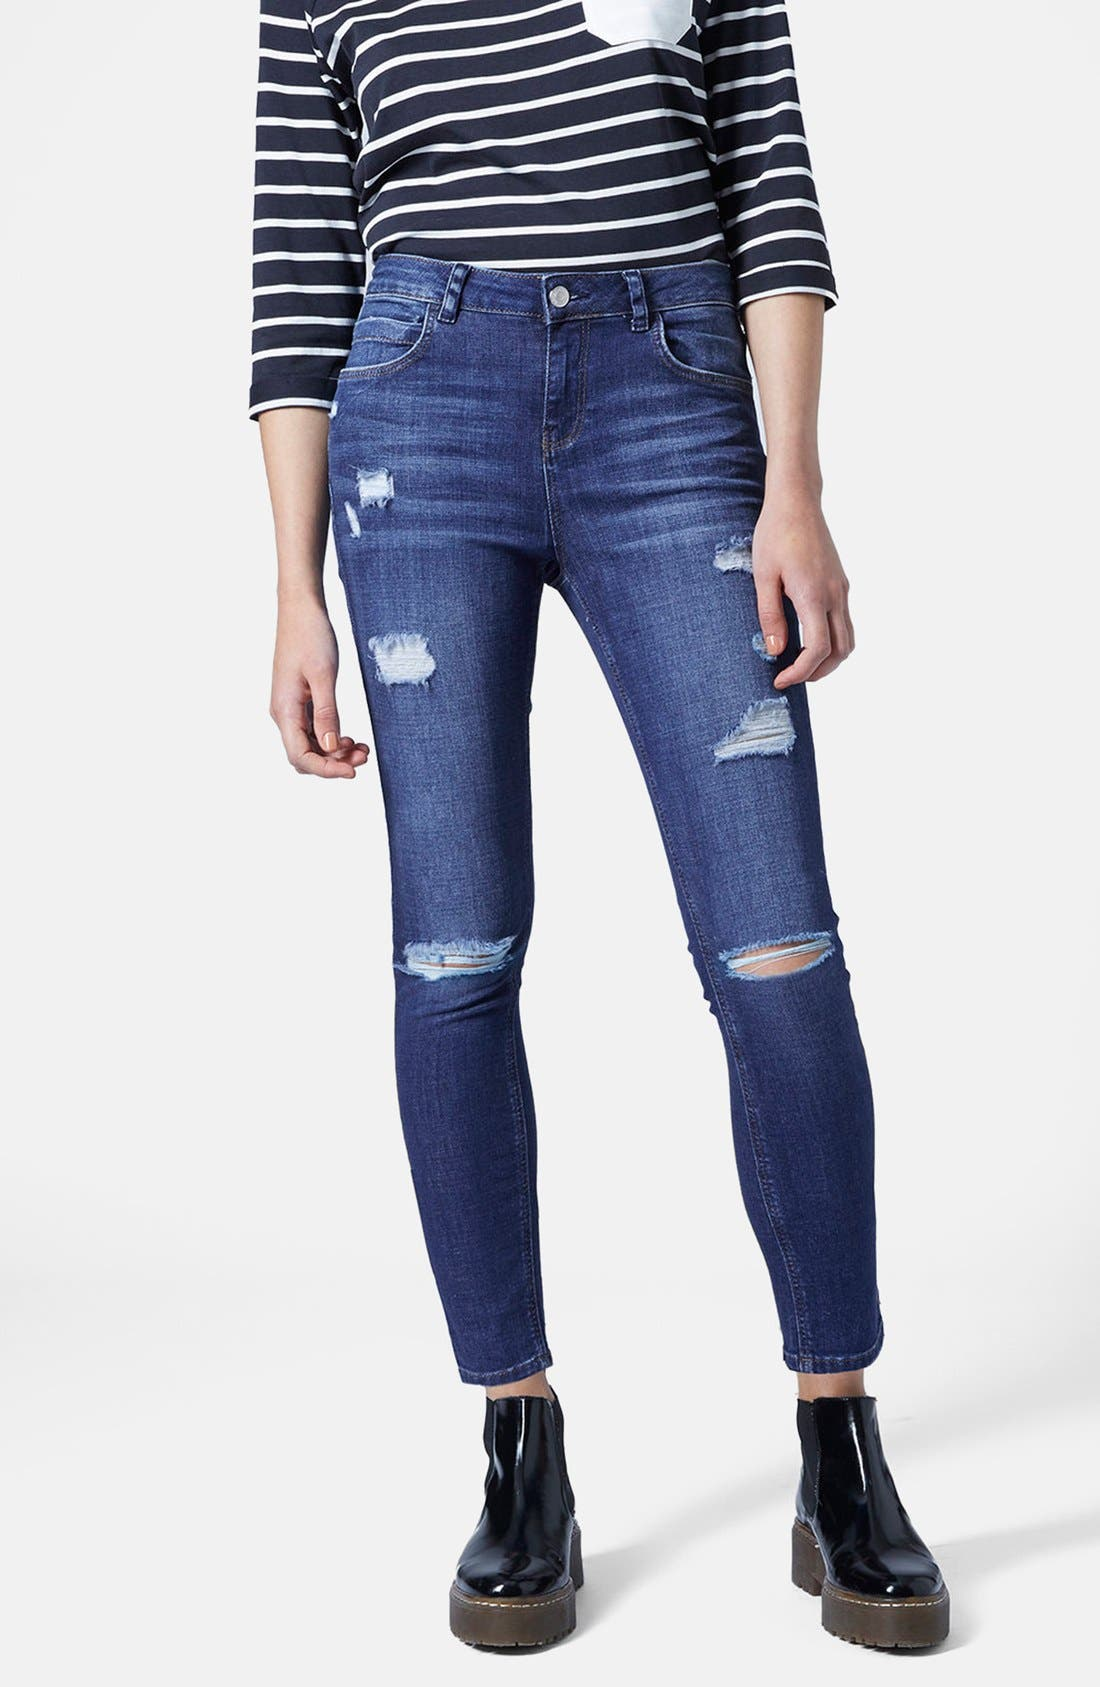 Alternate Image 1 Selected - Topshop Moto Ripped Skinny Jeans (Dark Denim) (Petite)